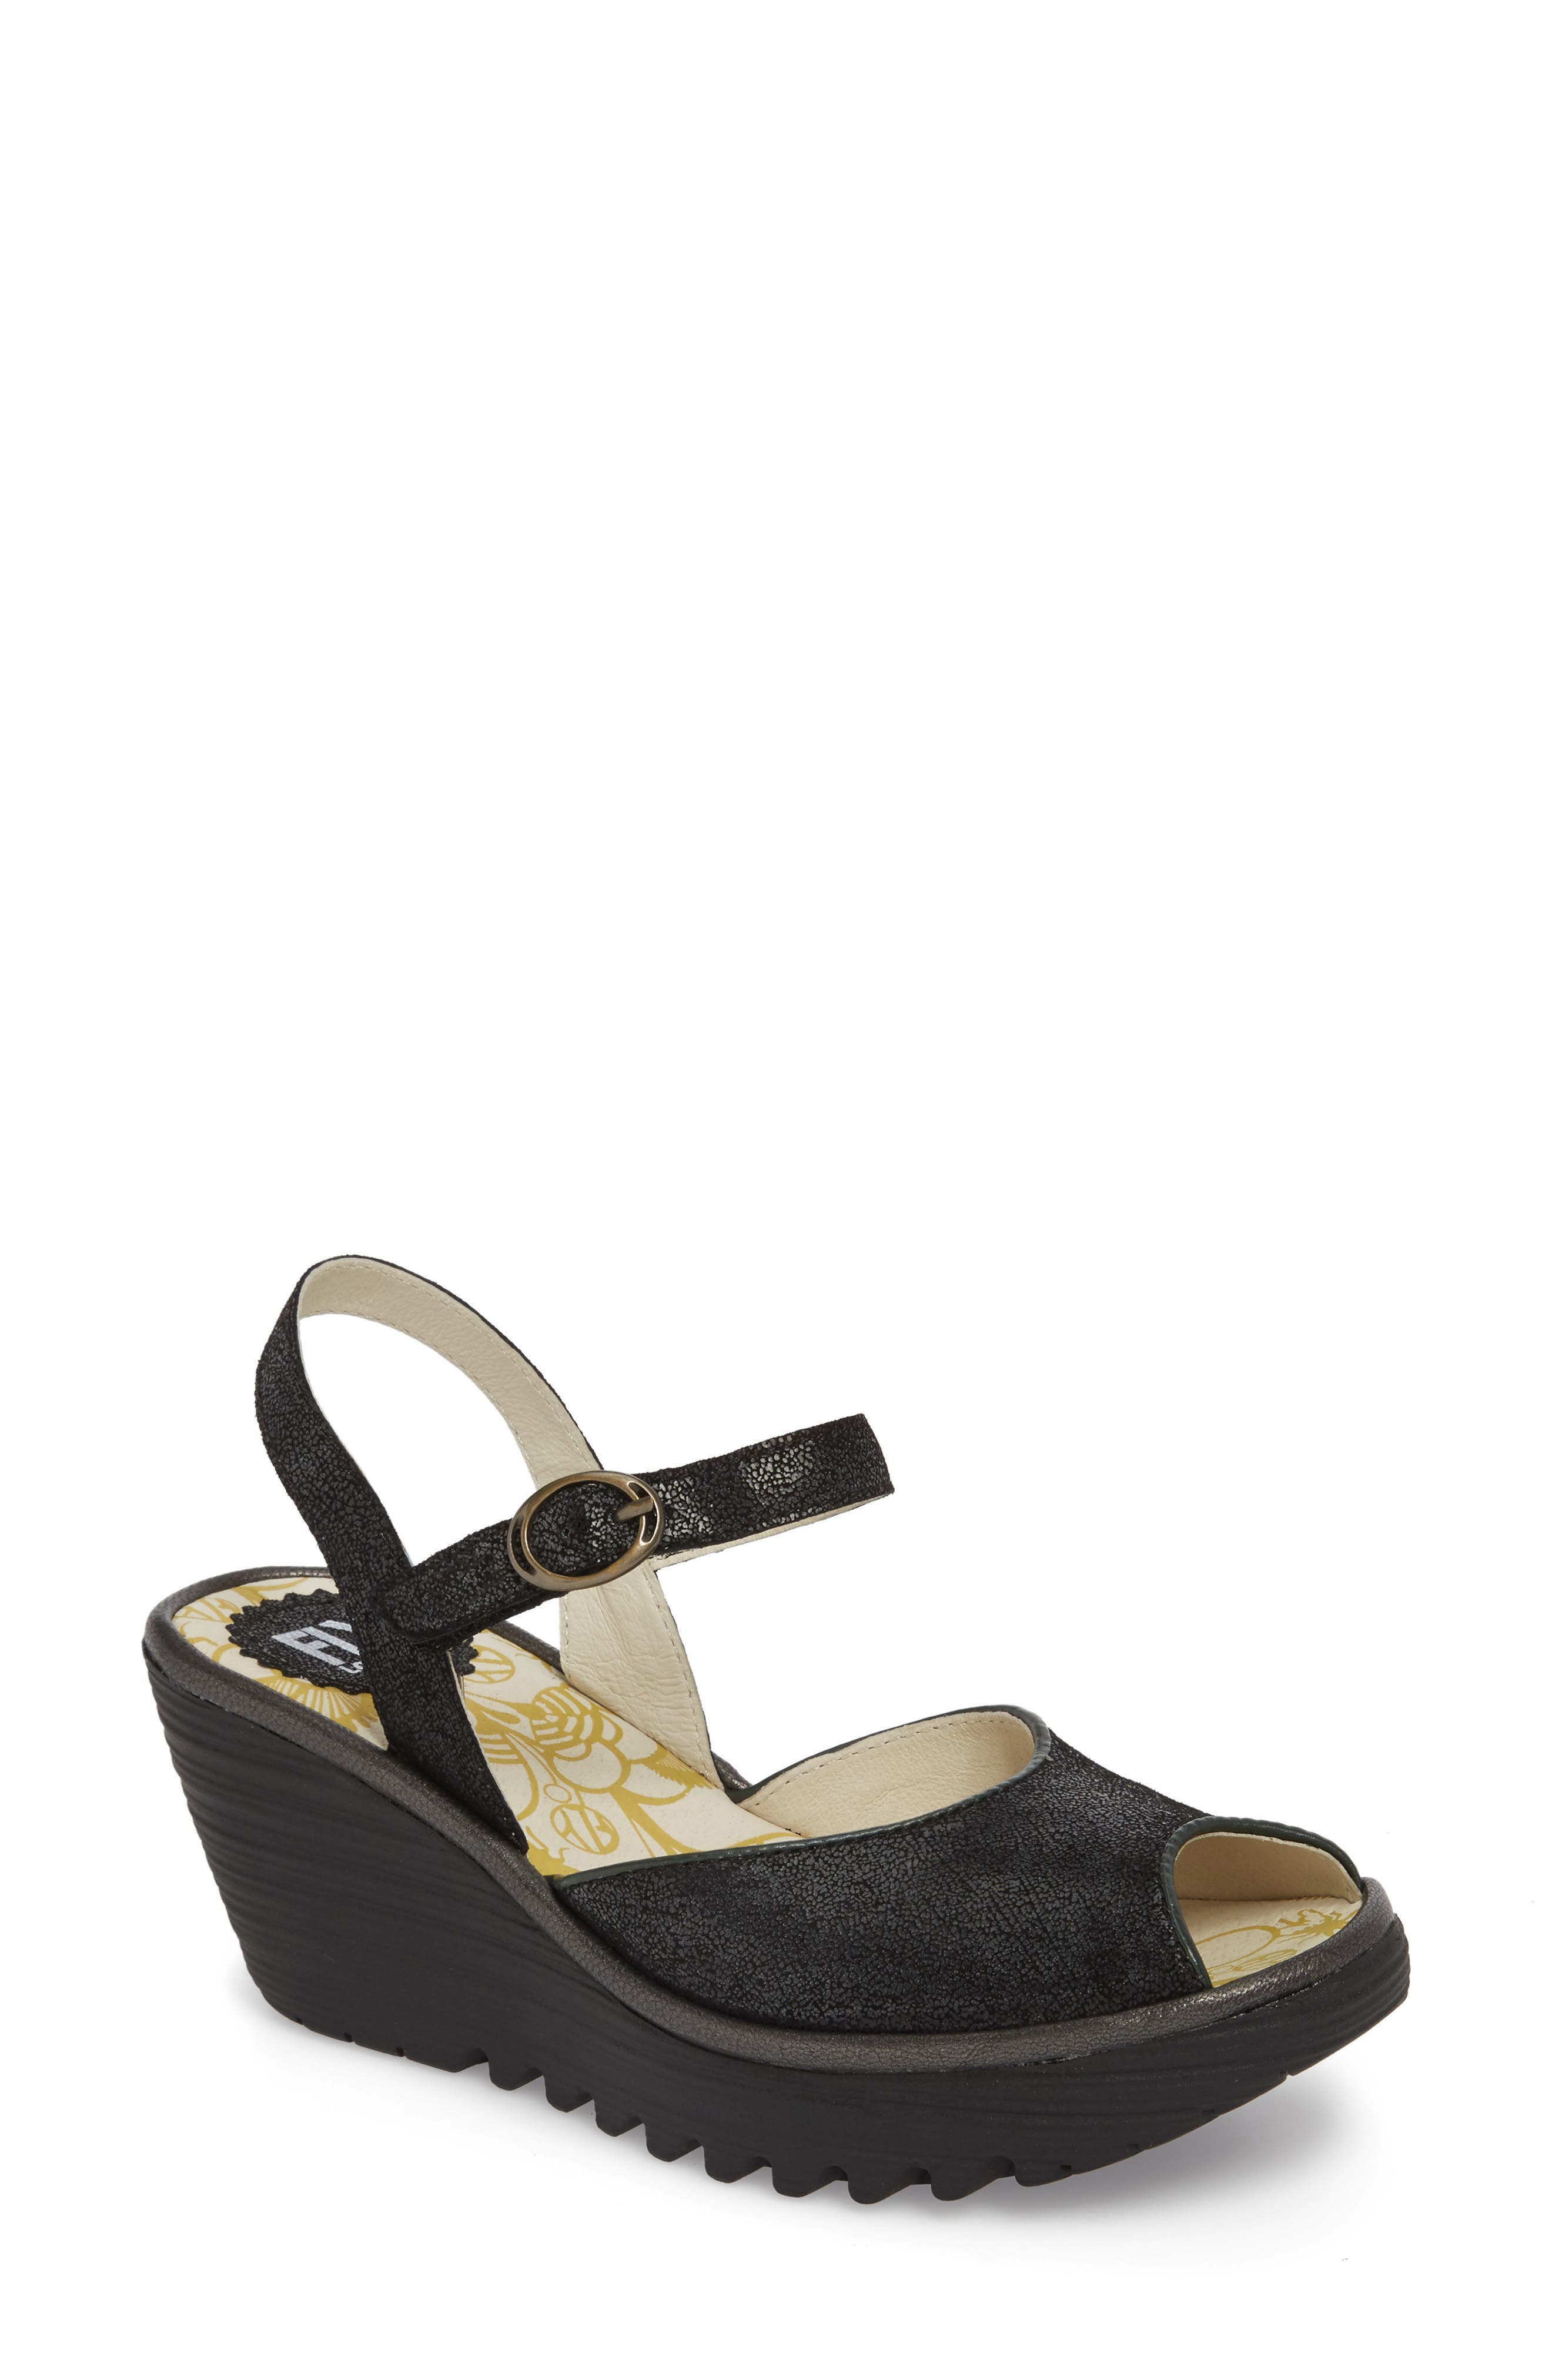 FLY LONDON Yora Wedge Sandal, Main, color, BLACK/ GRAPHITE LEATHER